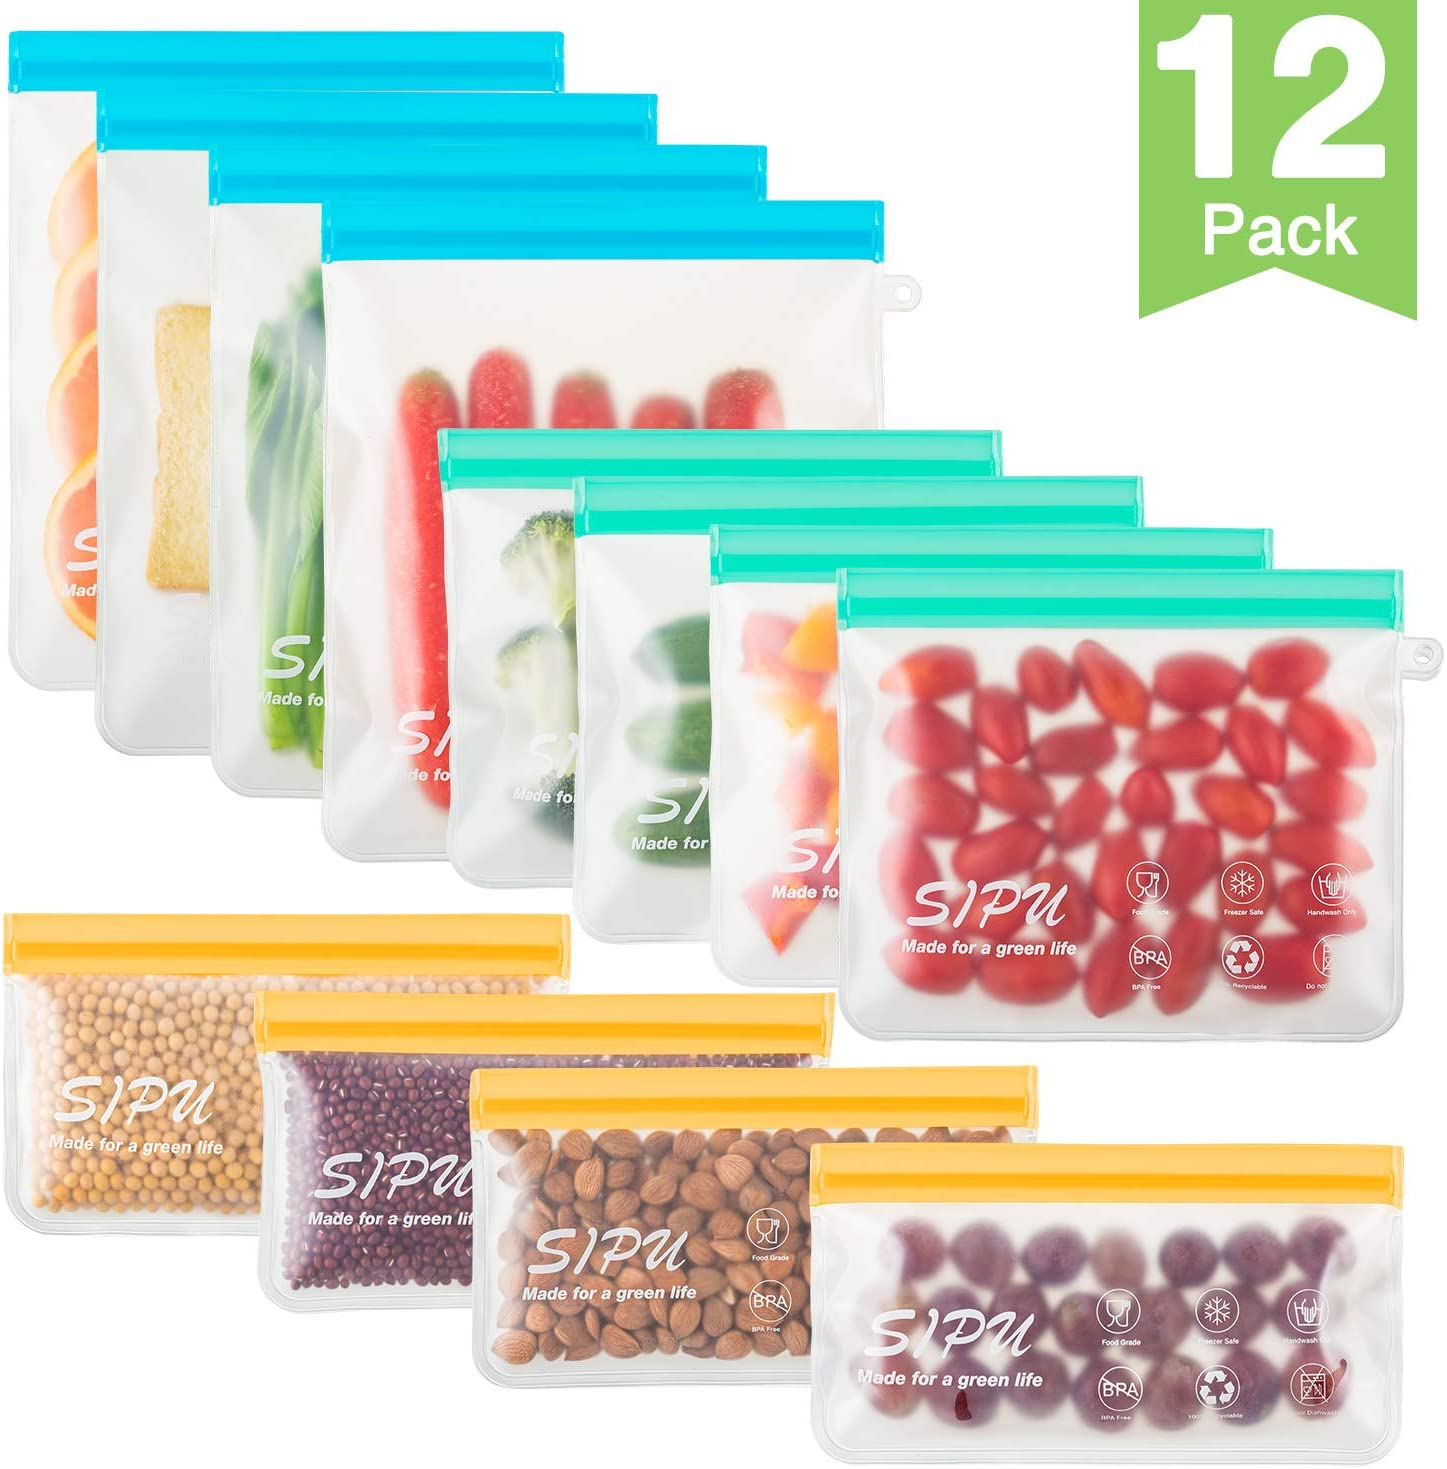 [12 Pack] DUAL Leakproof Reusable Storage Bags - (4 Gallon, Blue + 4 Sandwich, Green + 4 Snack, Orange), Extra Thick FDA Grade Lunch Bags, Kids Snacks, Fruit, Travel Storage, BPA Free, Freezer Safe